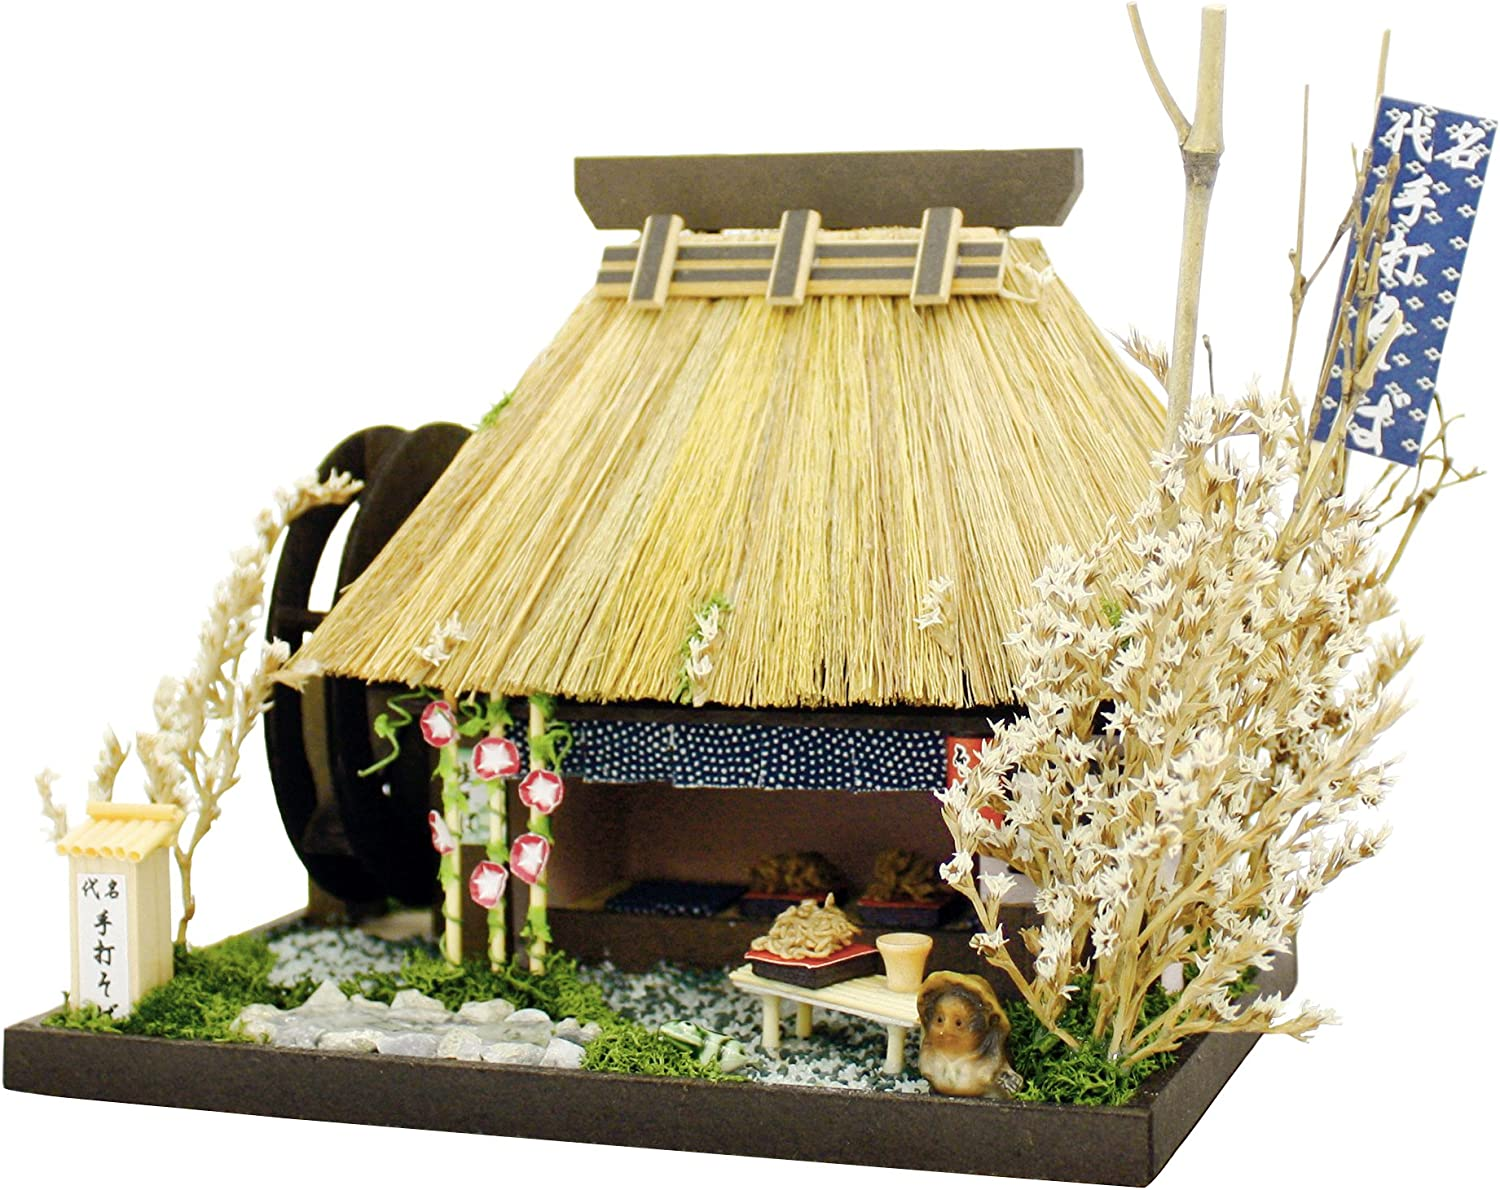 Billy handmade doll house kit Thatched House Kit noodle shop 8442 (japan import)